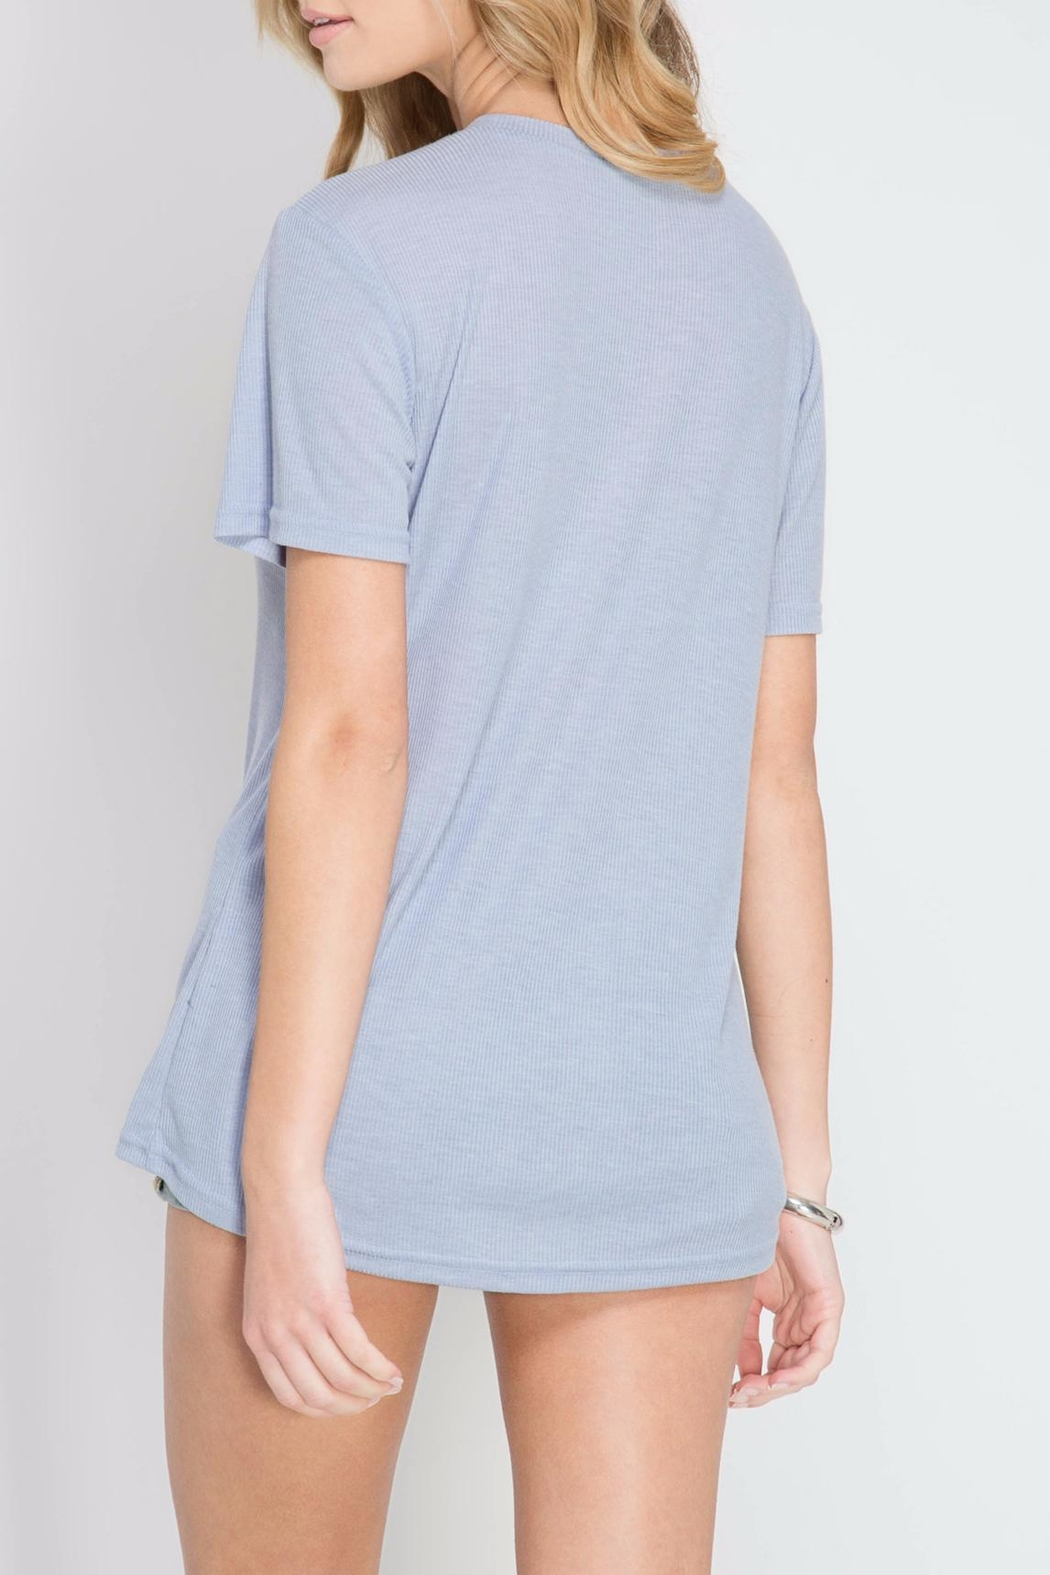 She + Sky Lace Up Periwinkle Top - Side Cropped Image